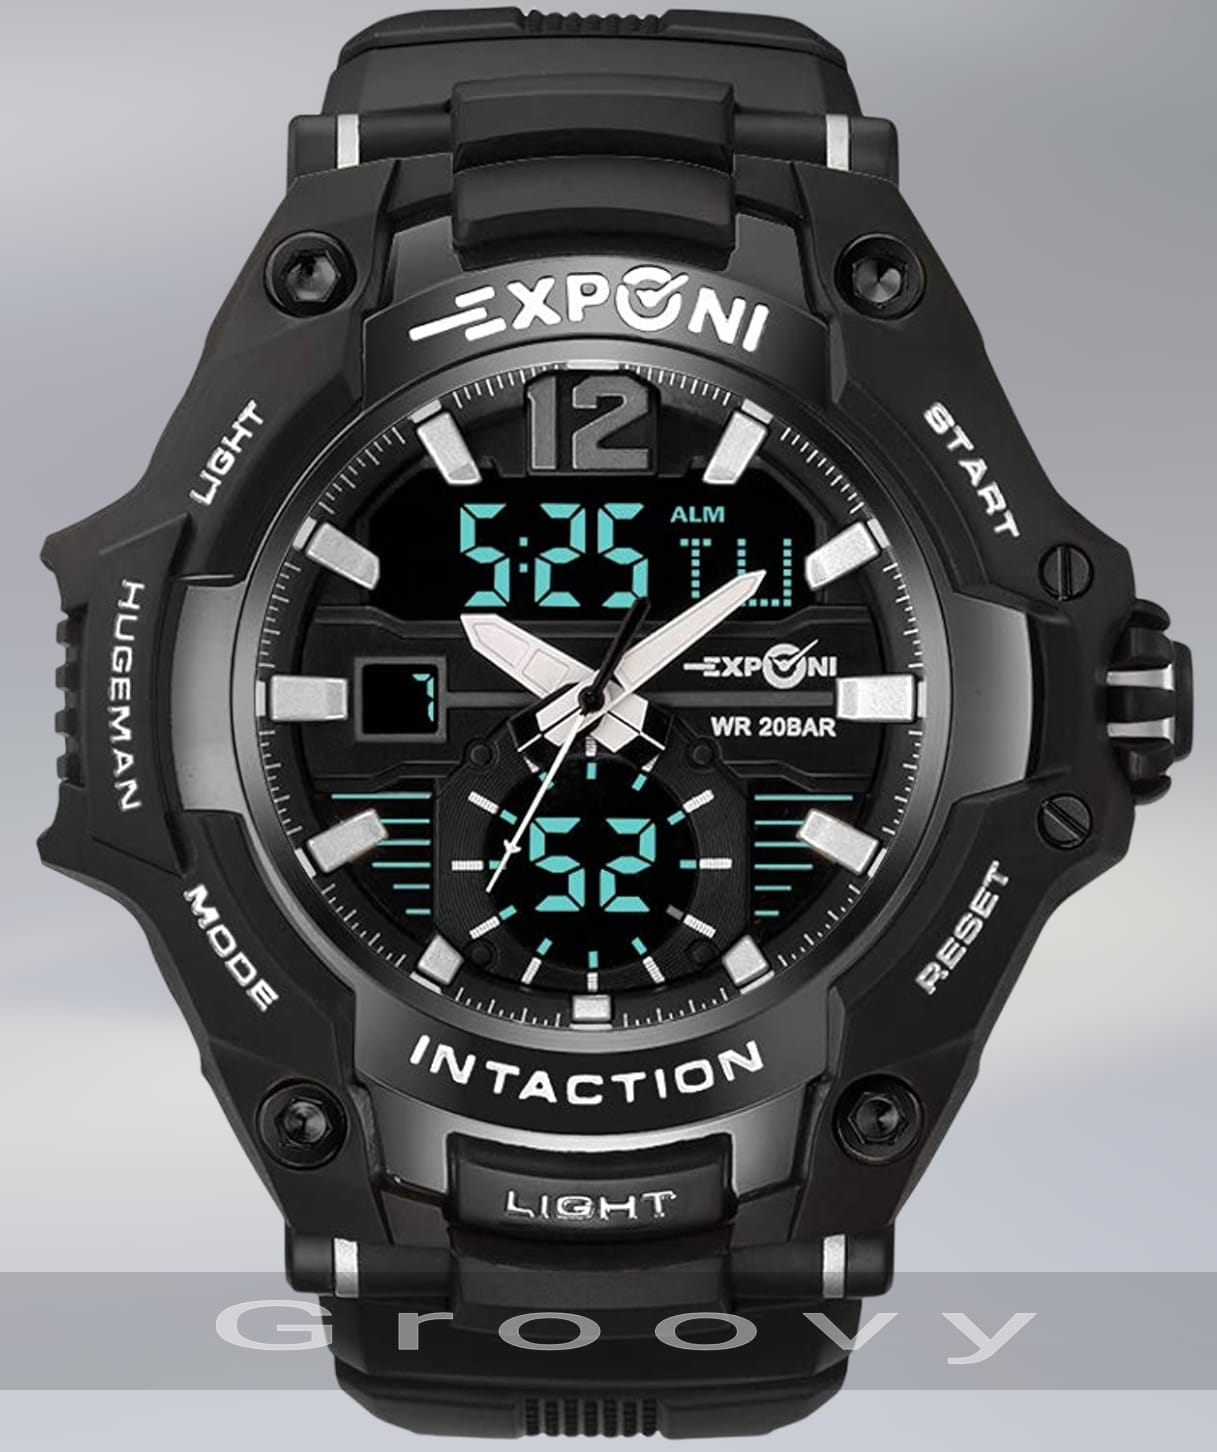 EXPCNI Multi-function Sports Waterproof Men's Dual Time Digital Electronic Watch - Exponi